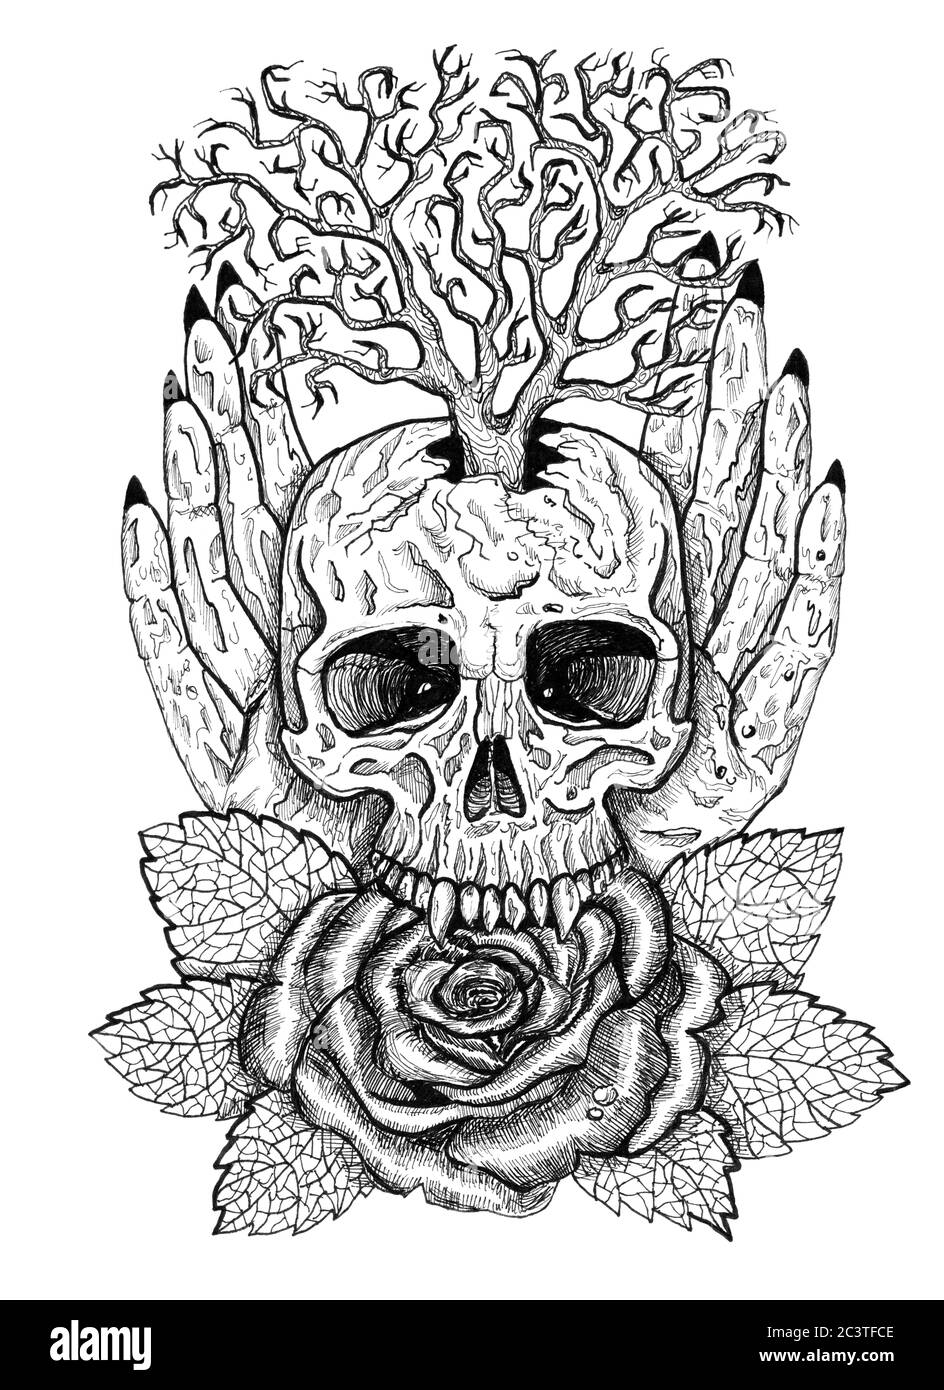 Black and white wiccan emblem with skull, human hands, rose flower and tree. Esoteric, occult and gothic illustration with symbols of death, Halloween Stock Photo